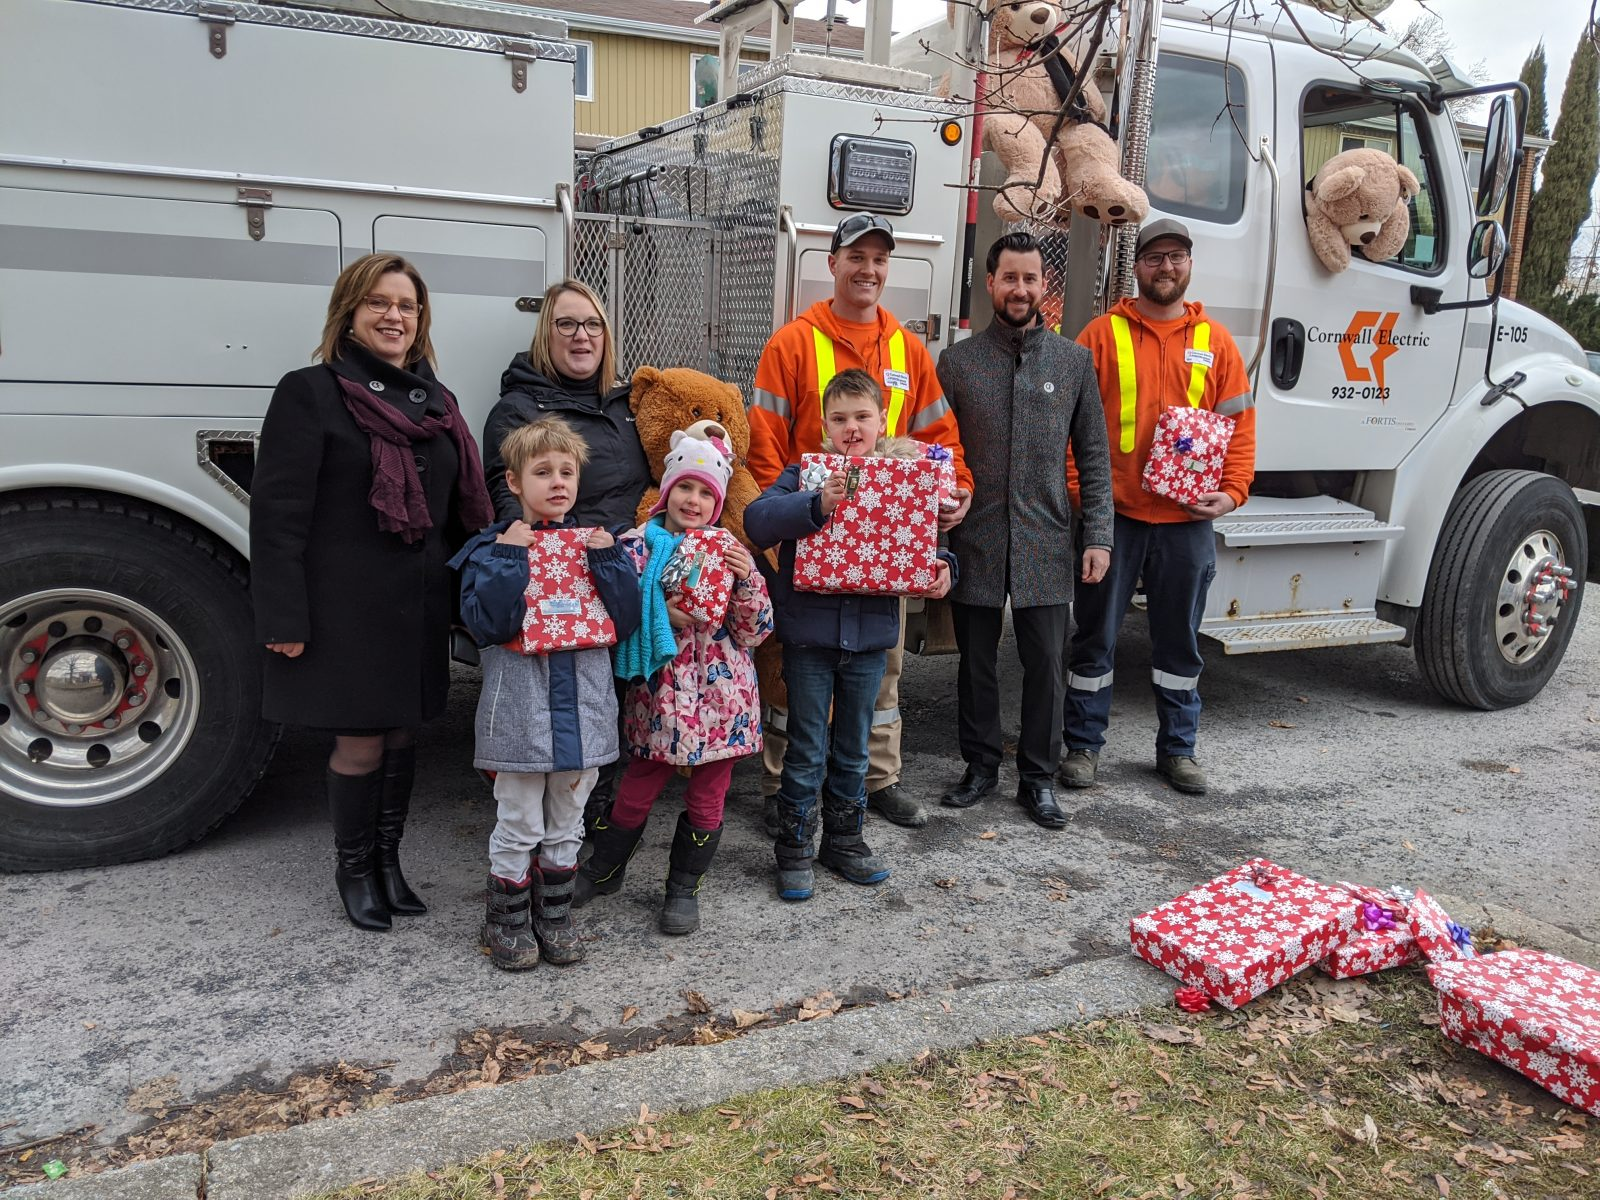 Rachel's Kids and Cornwall Electric powered by the Christmas spirit